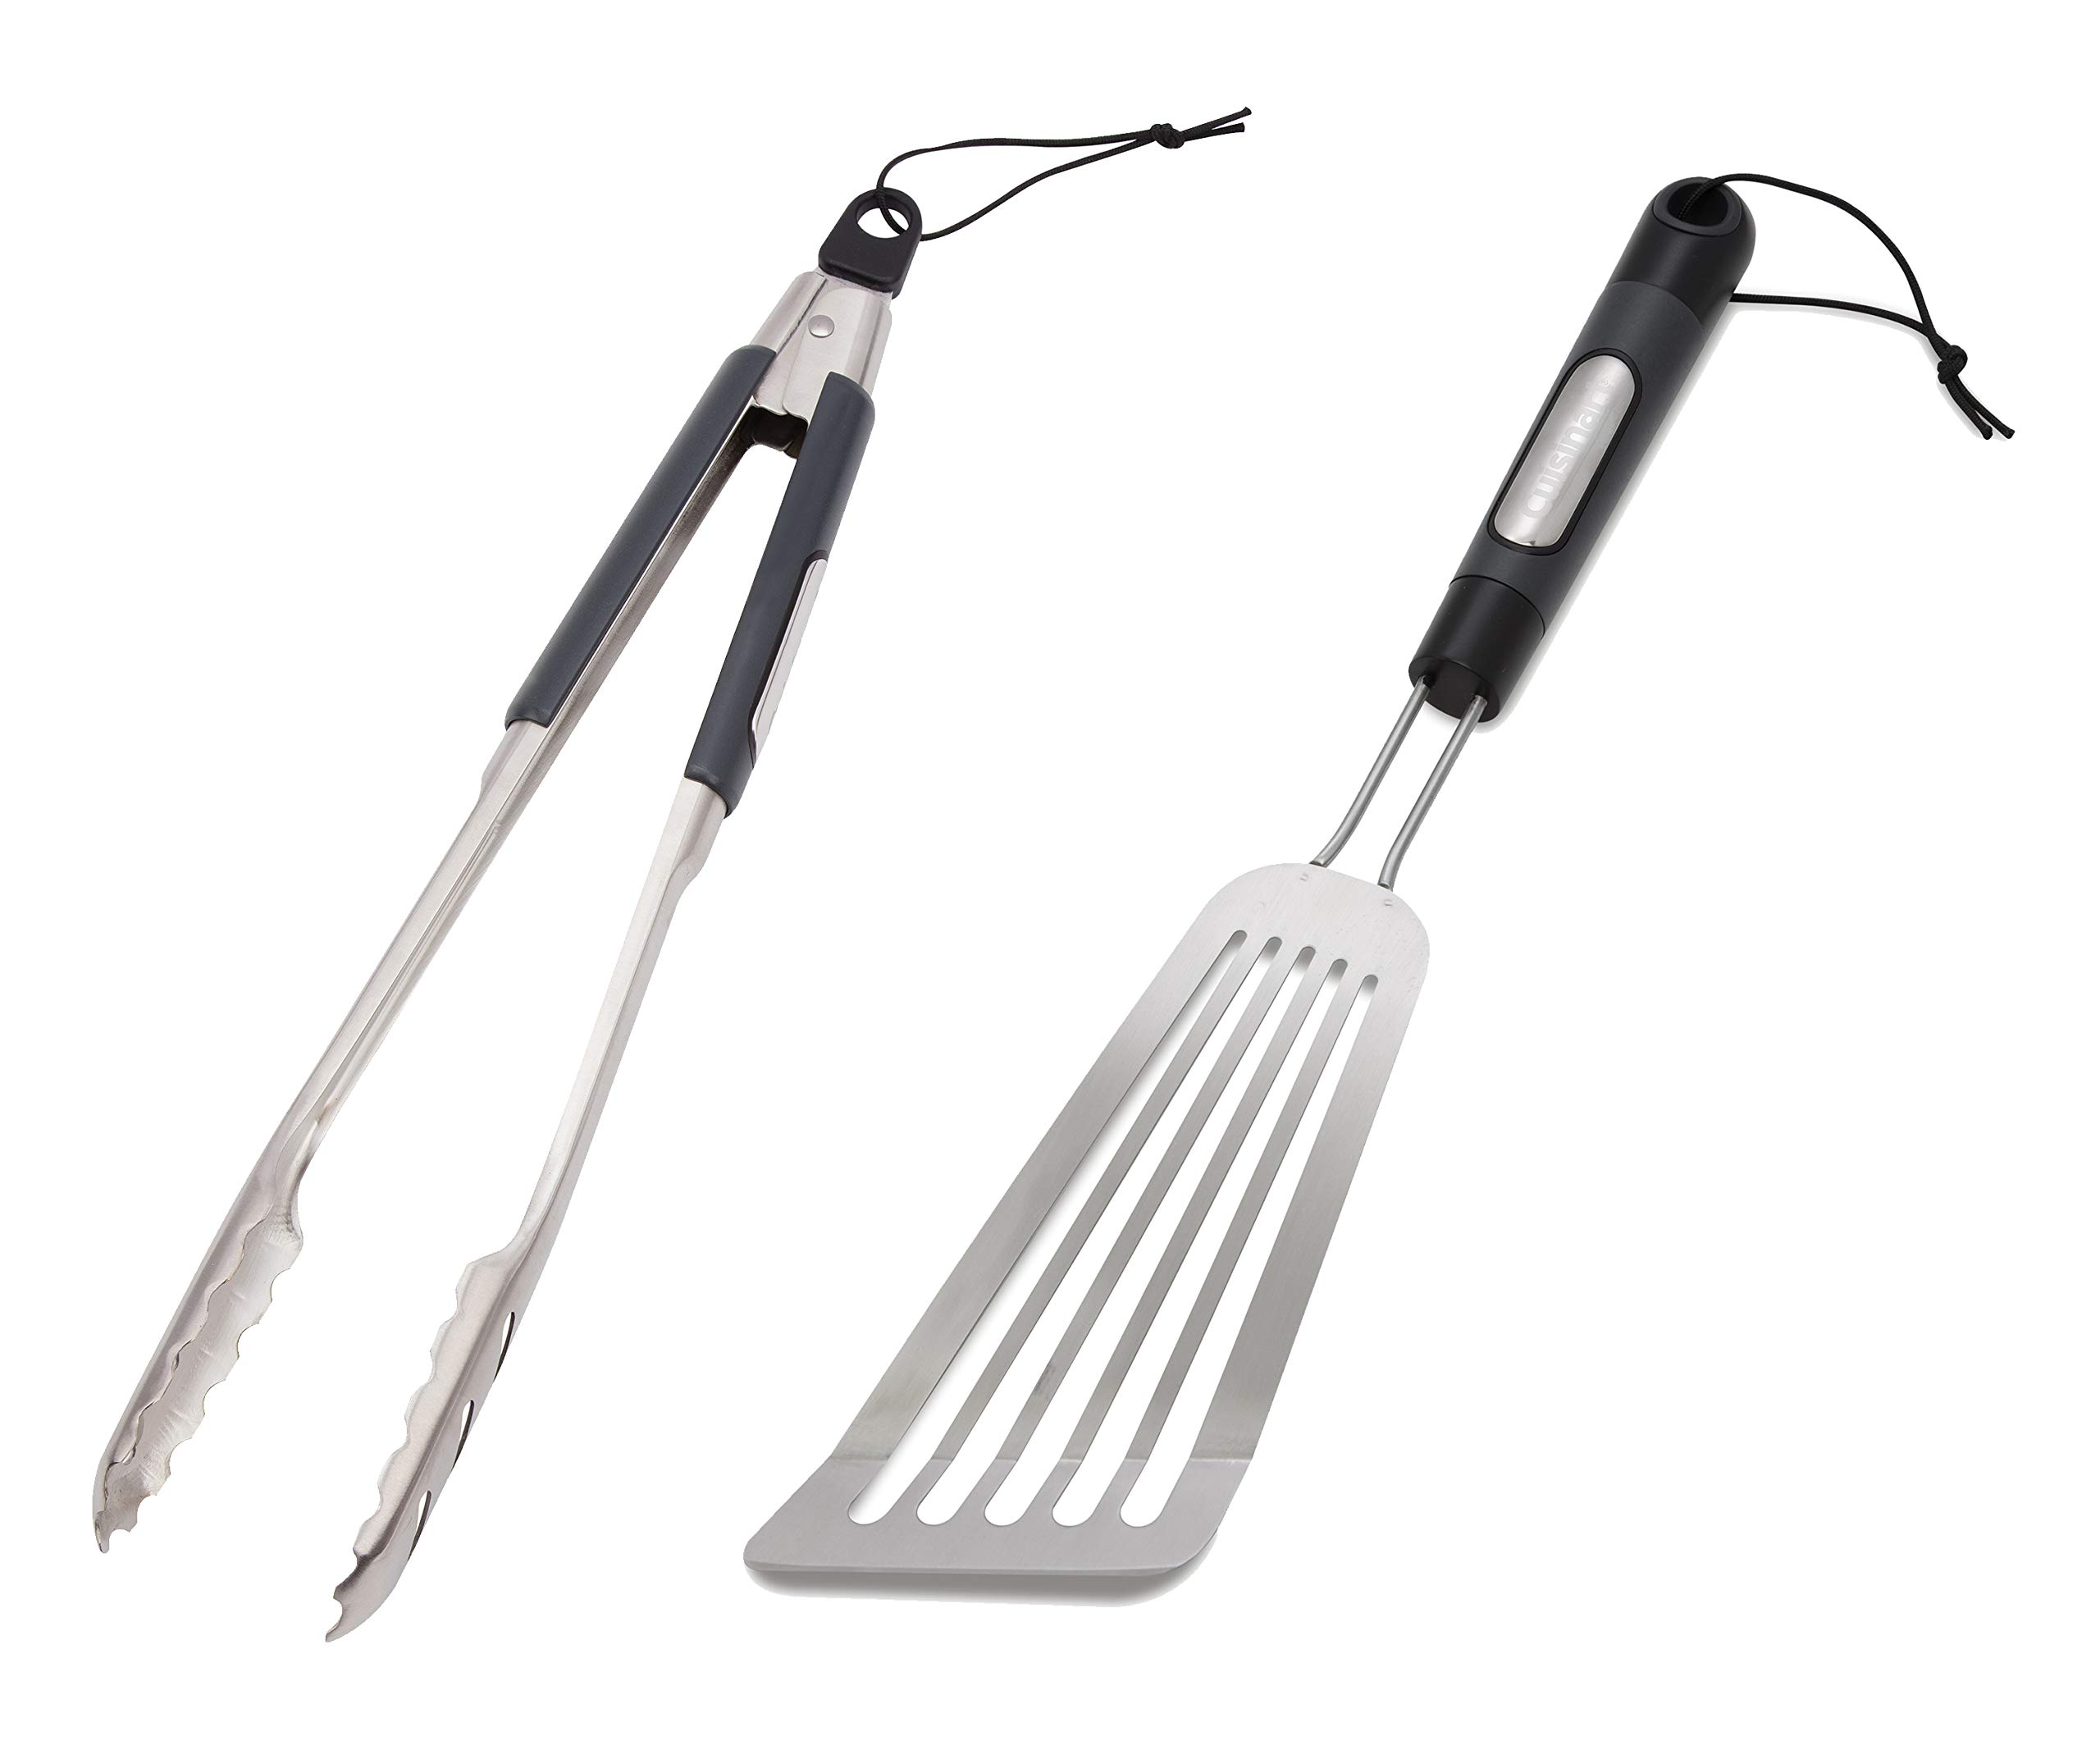 A.T. Products Corp. Cuisinart Grill Locking Tongs Bundle with Cuisinart Stainless Steel BBQ Fish Spatula by A.T. Products Corp.